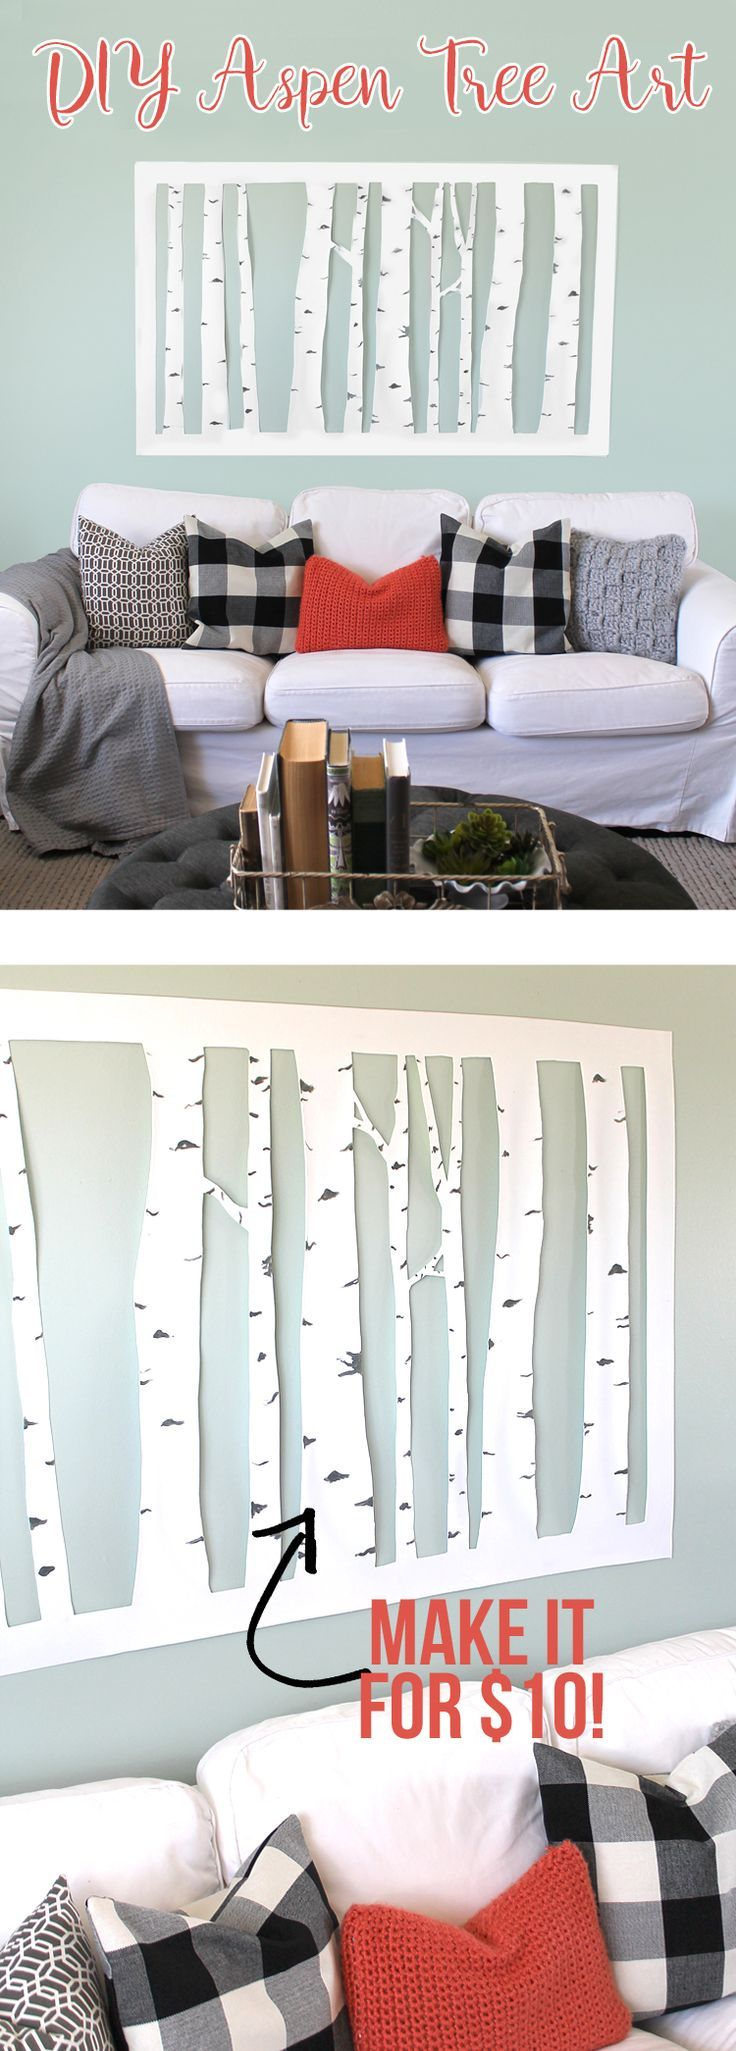 Large inexpensive diy aspen tree wall art diy best bloggers home